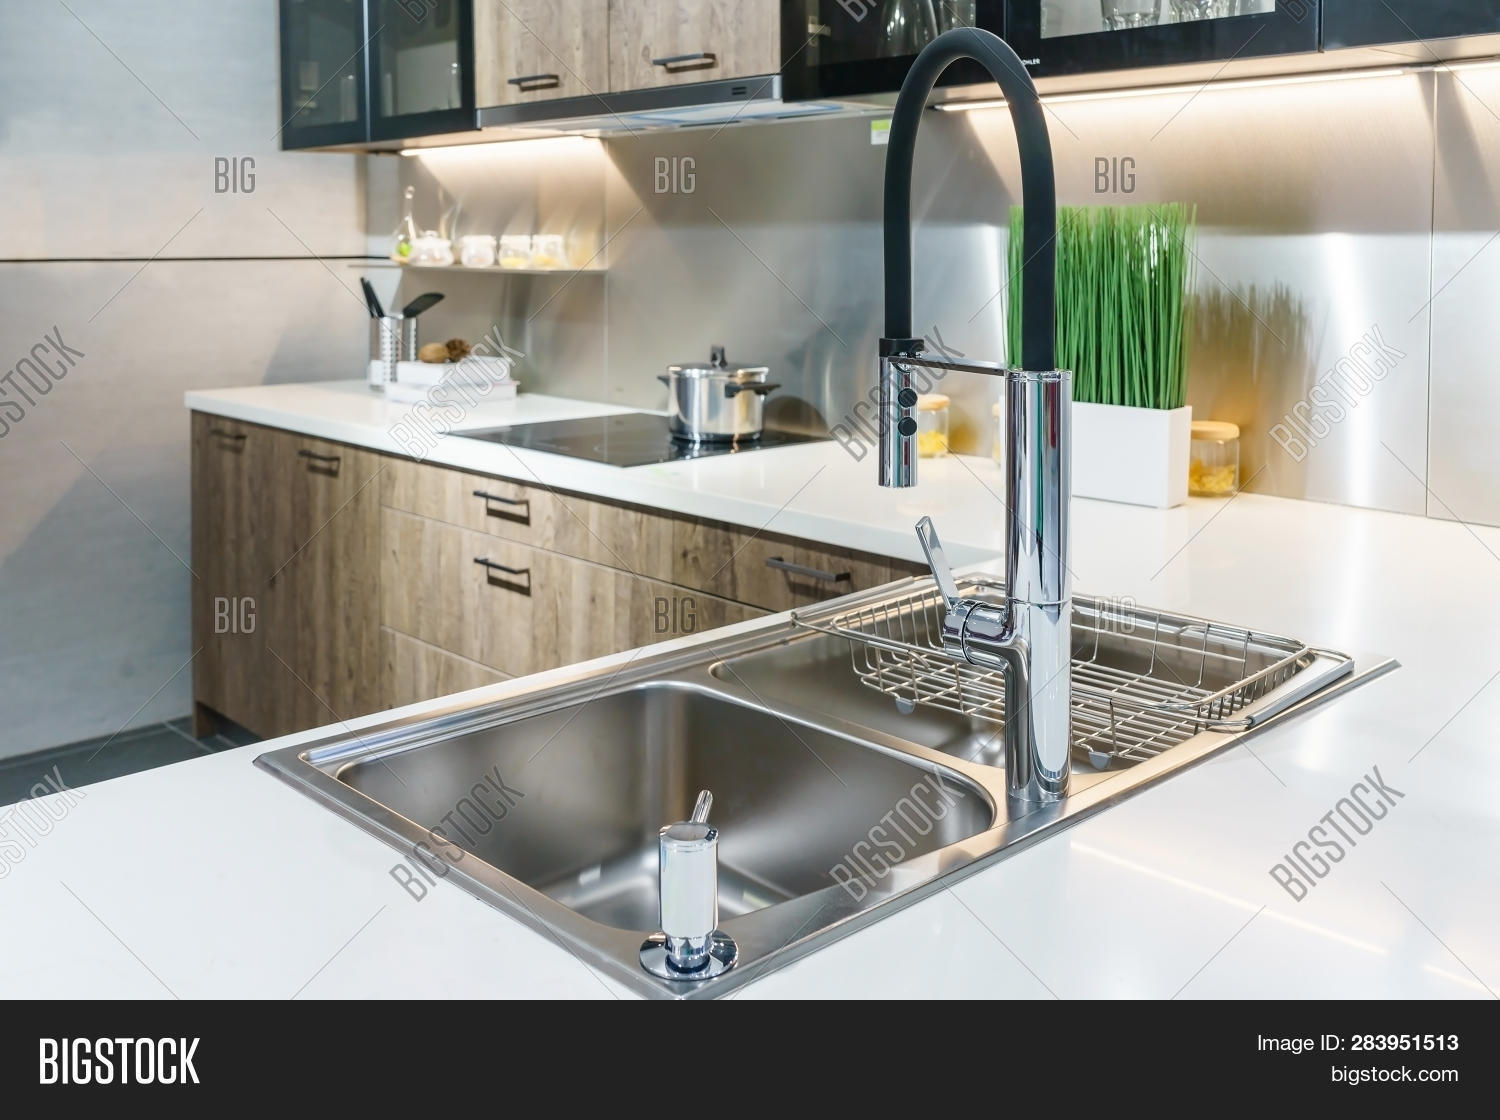 Stainless Kitchen Sink Image & Photo (Free Trial)   Bigstock